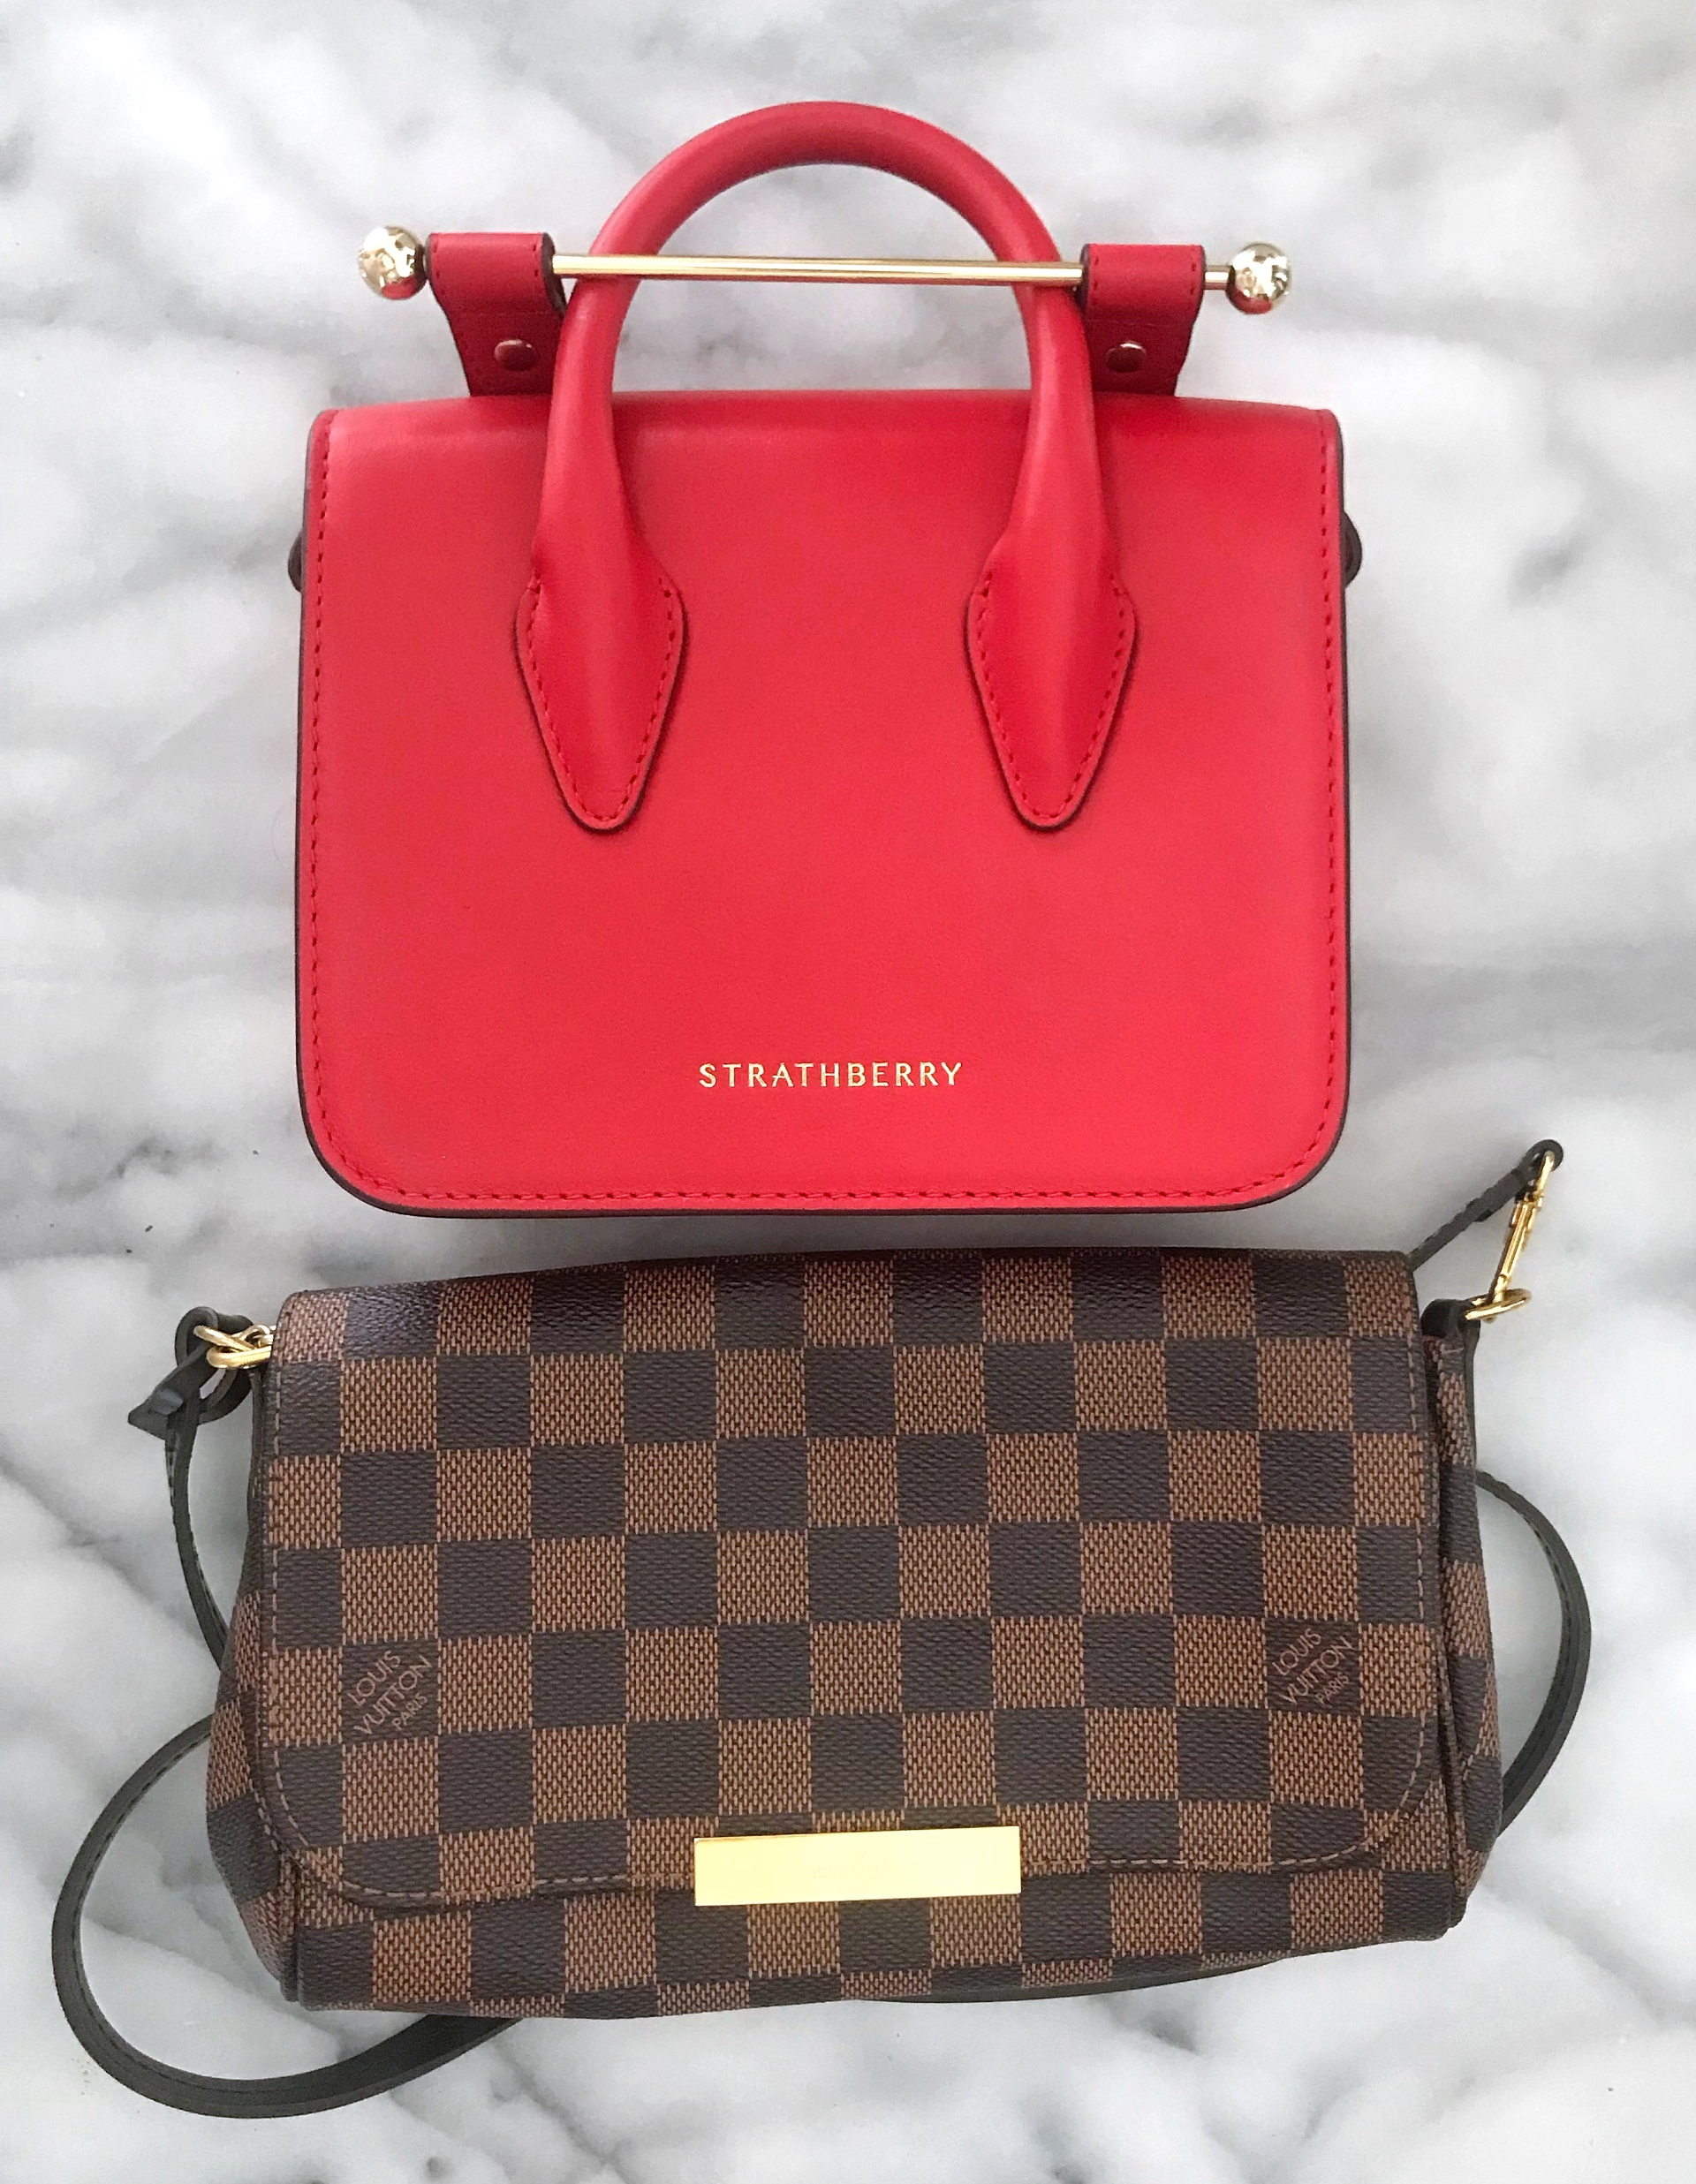 Strathberry Nano MC size comparison Favorite PM | CoffeeandHandbags.com